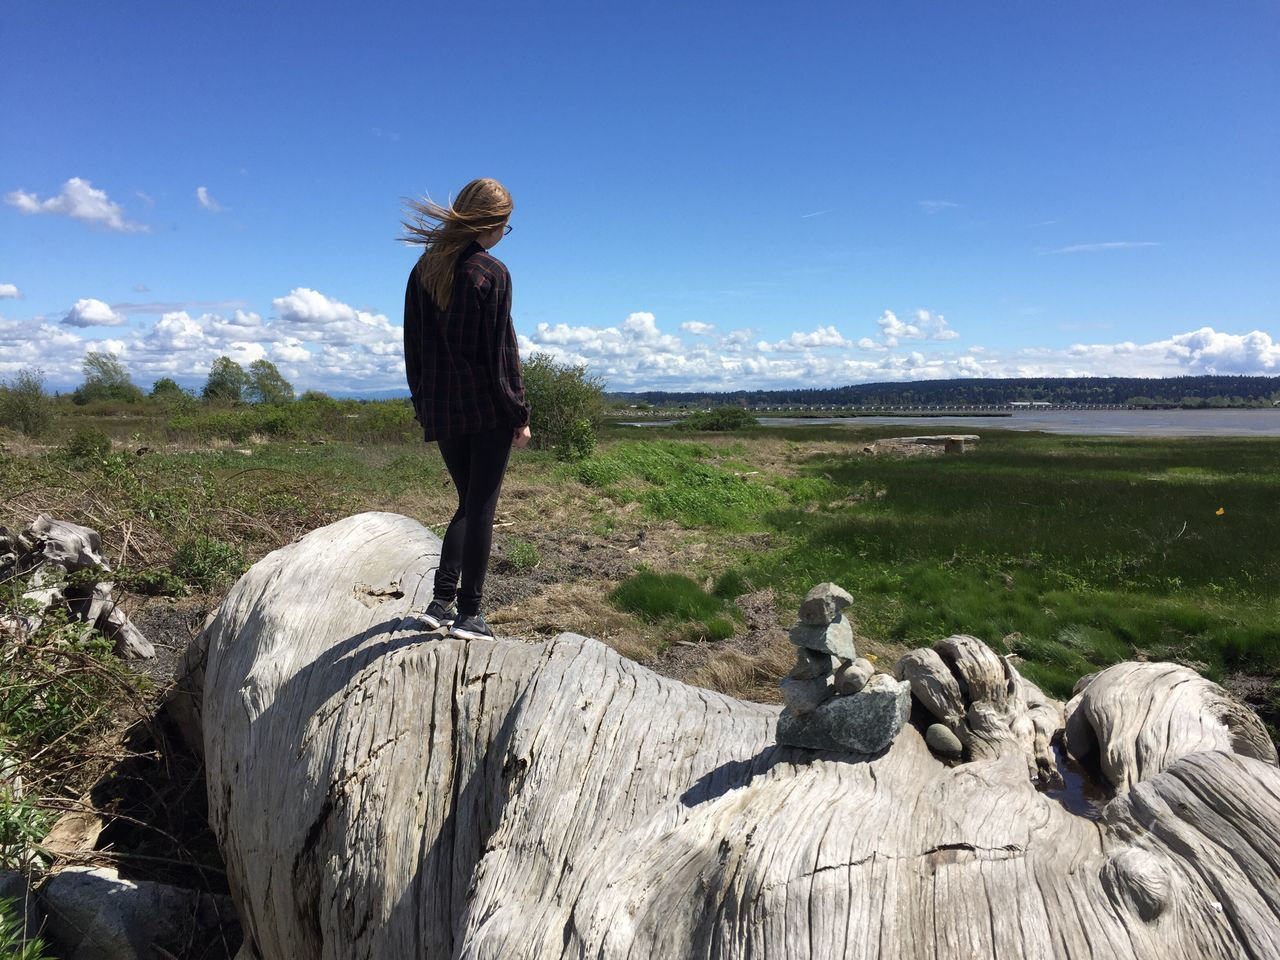 Girl standing on driftwood Nature Rear View Landscape Sky Field Day Scenics One Person Beauty In Nature Real People Outdoors Standing Lifestyles Grass Sea Women Water Horizon Over Water Mammal People